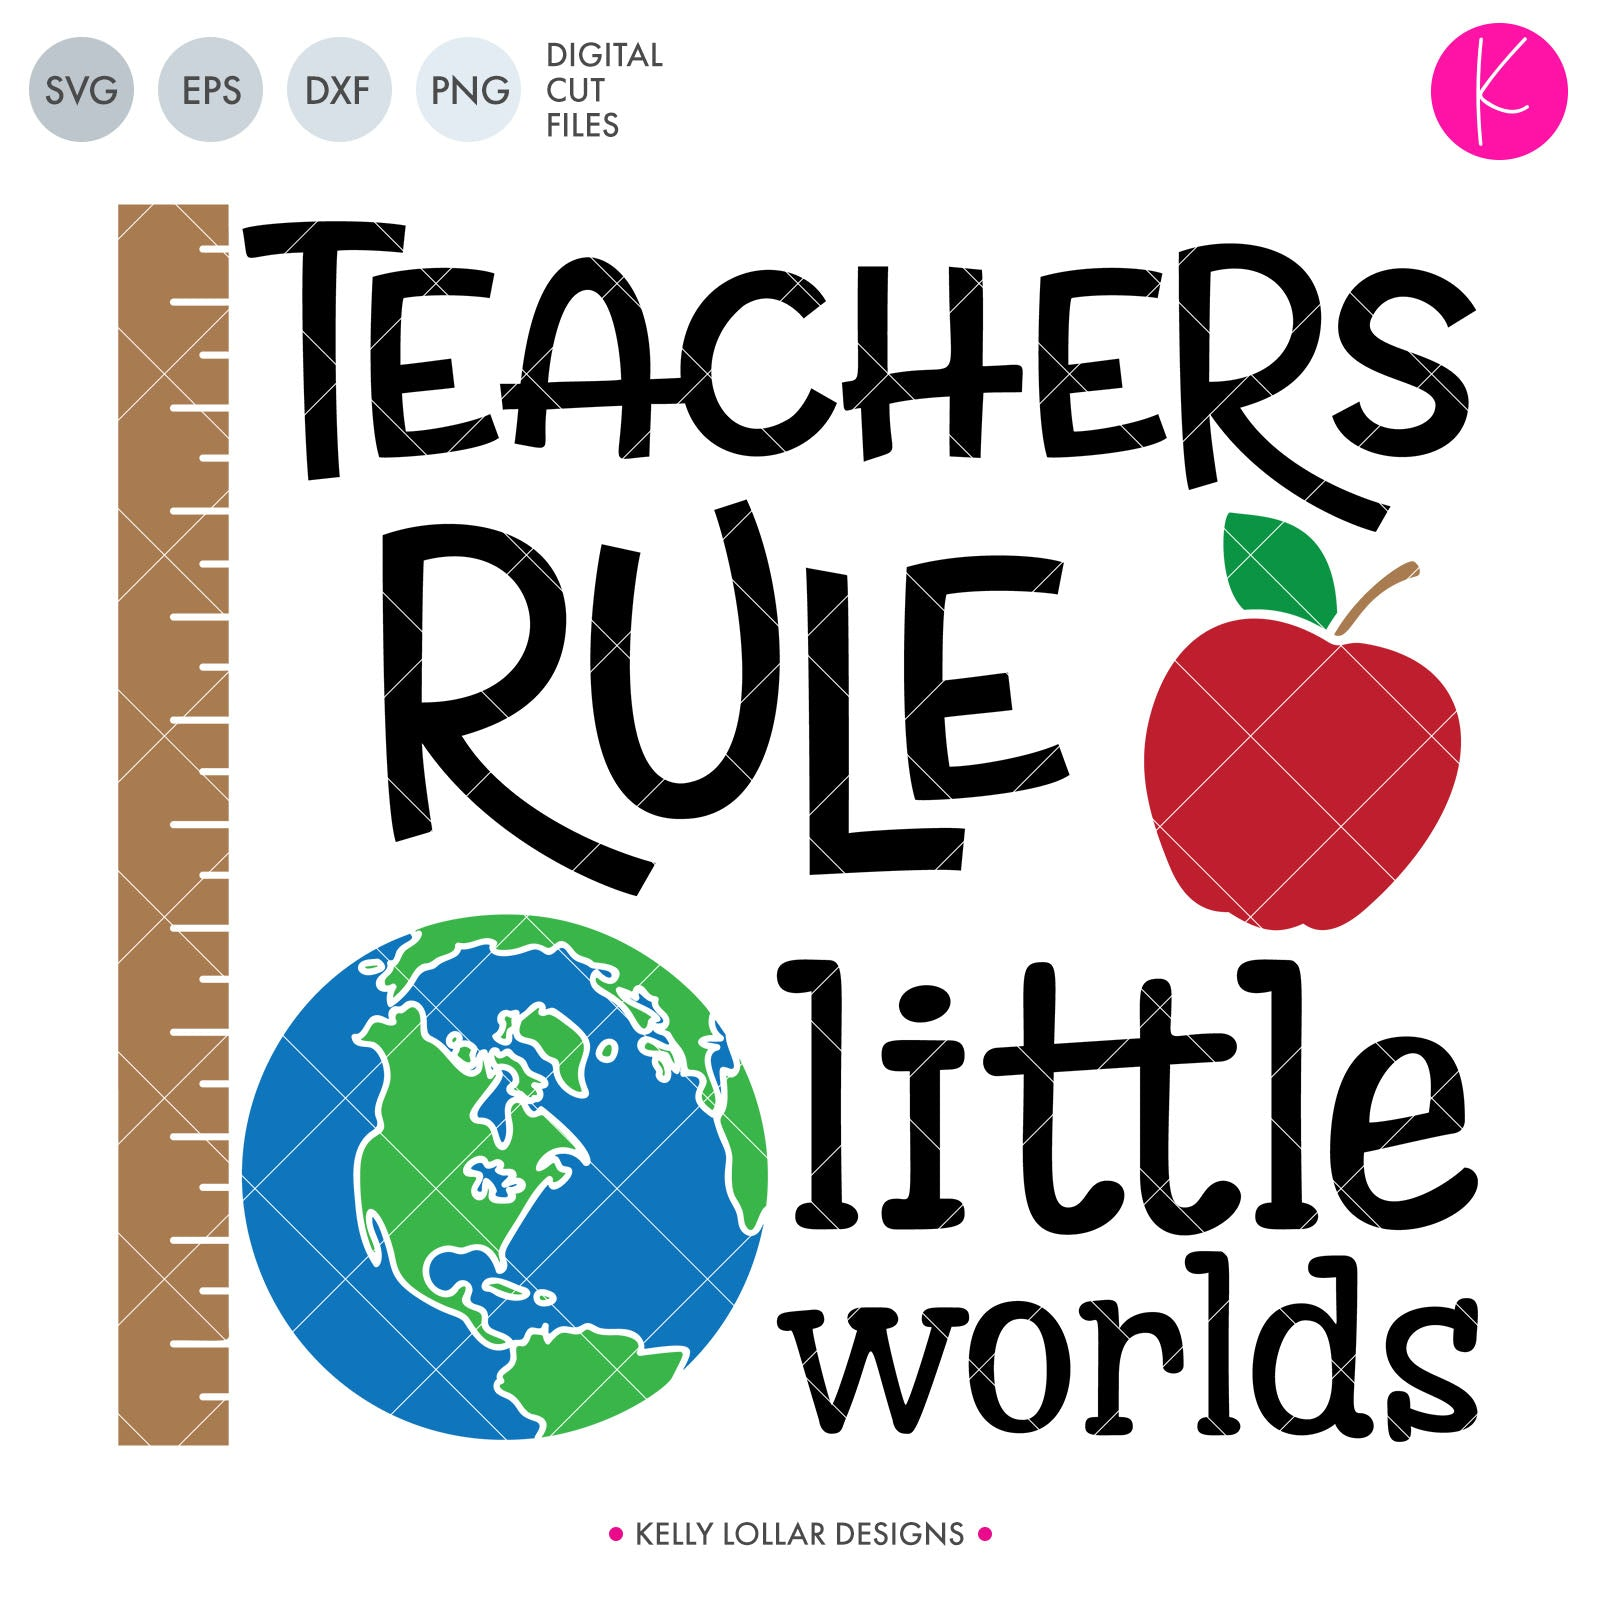 Teachers Rule Little Worlds | SVG DXF EPS PNG Cut Files Teacher Appreciation Shirt or Sign Design with Apple, Rule and Globe | SVG DXF EPS PNG Cut Files Early elementary school teacher design for shirts, signs and decor.Teaching takes dedication